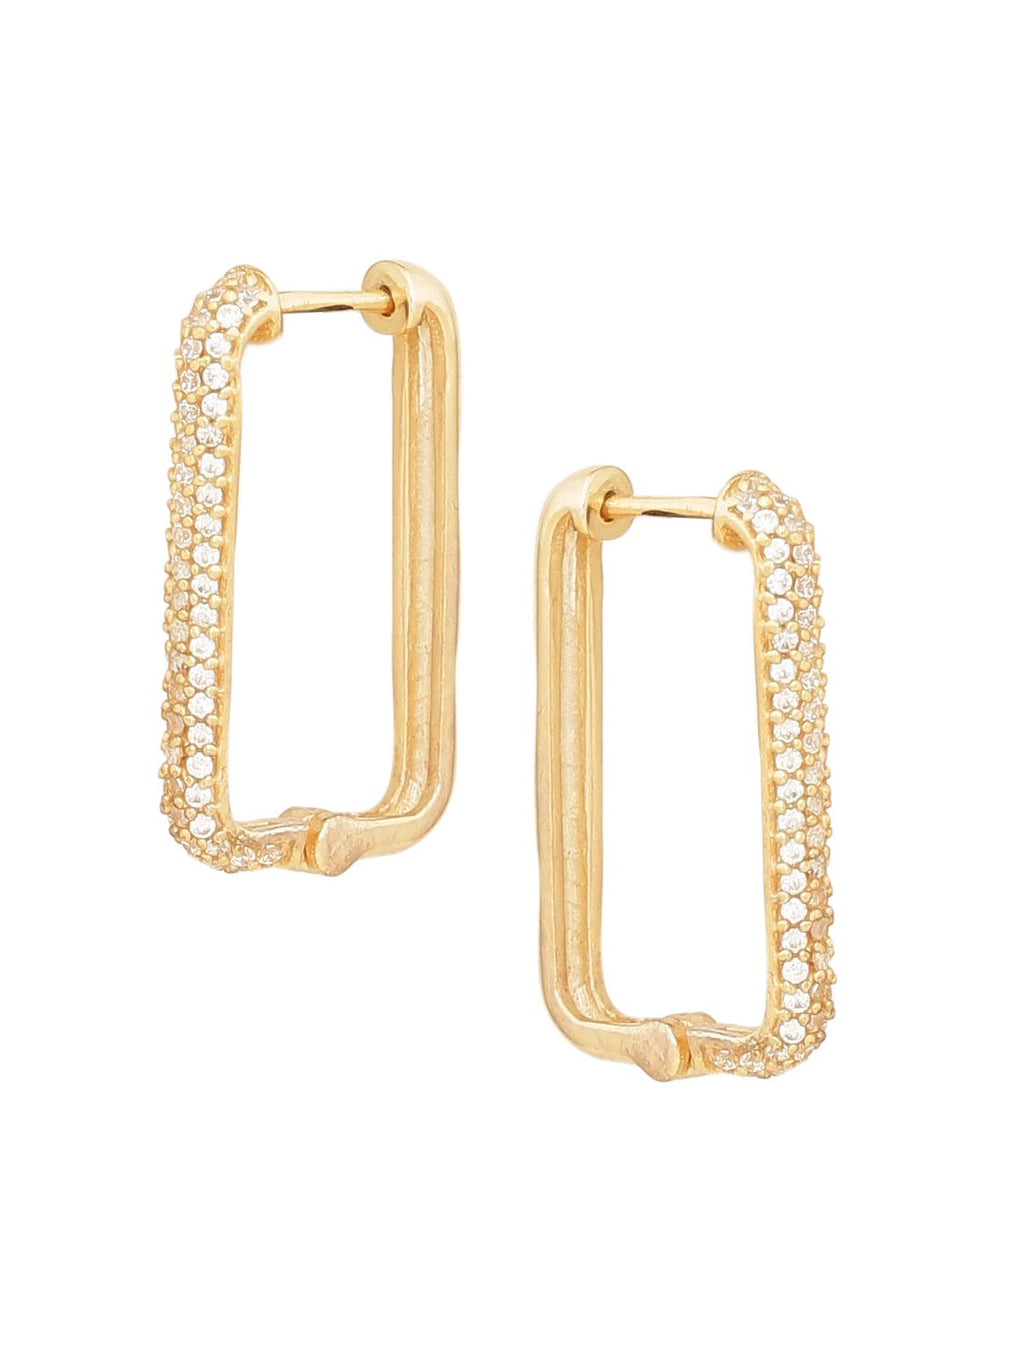 Oblong Studded Huggies earrings ARVINO